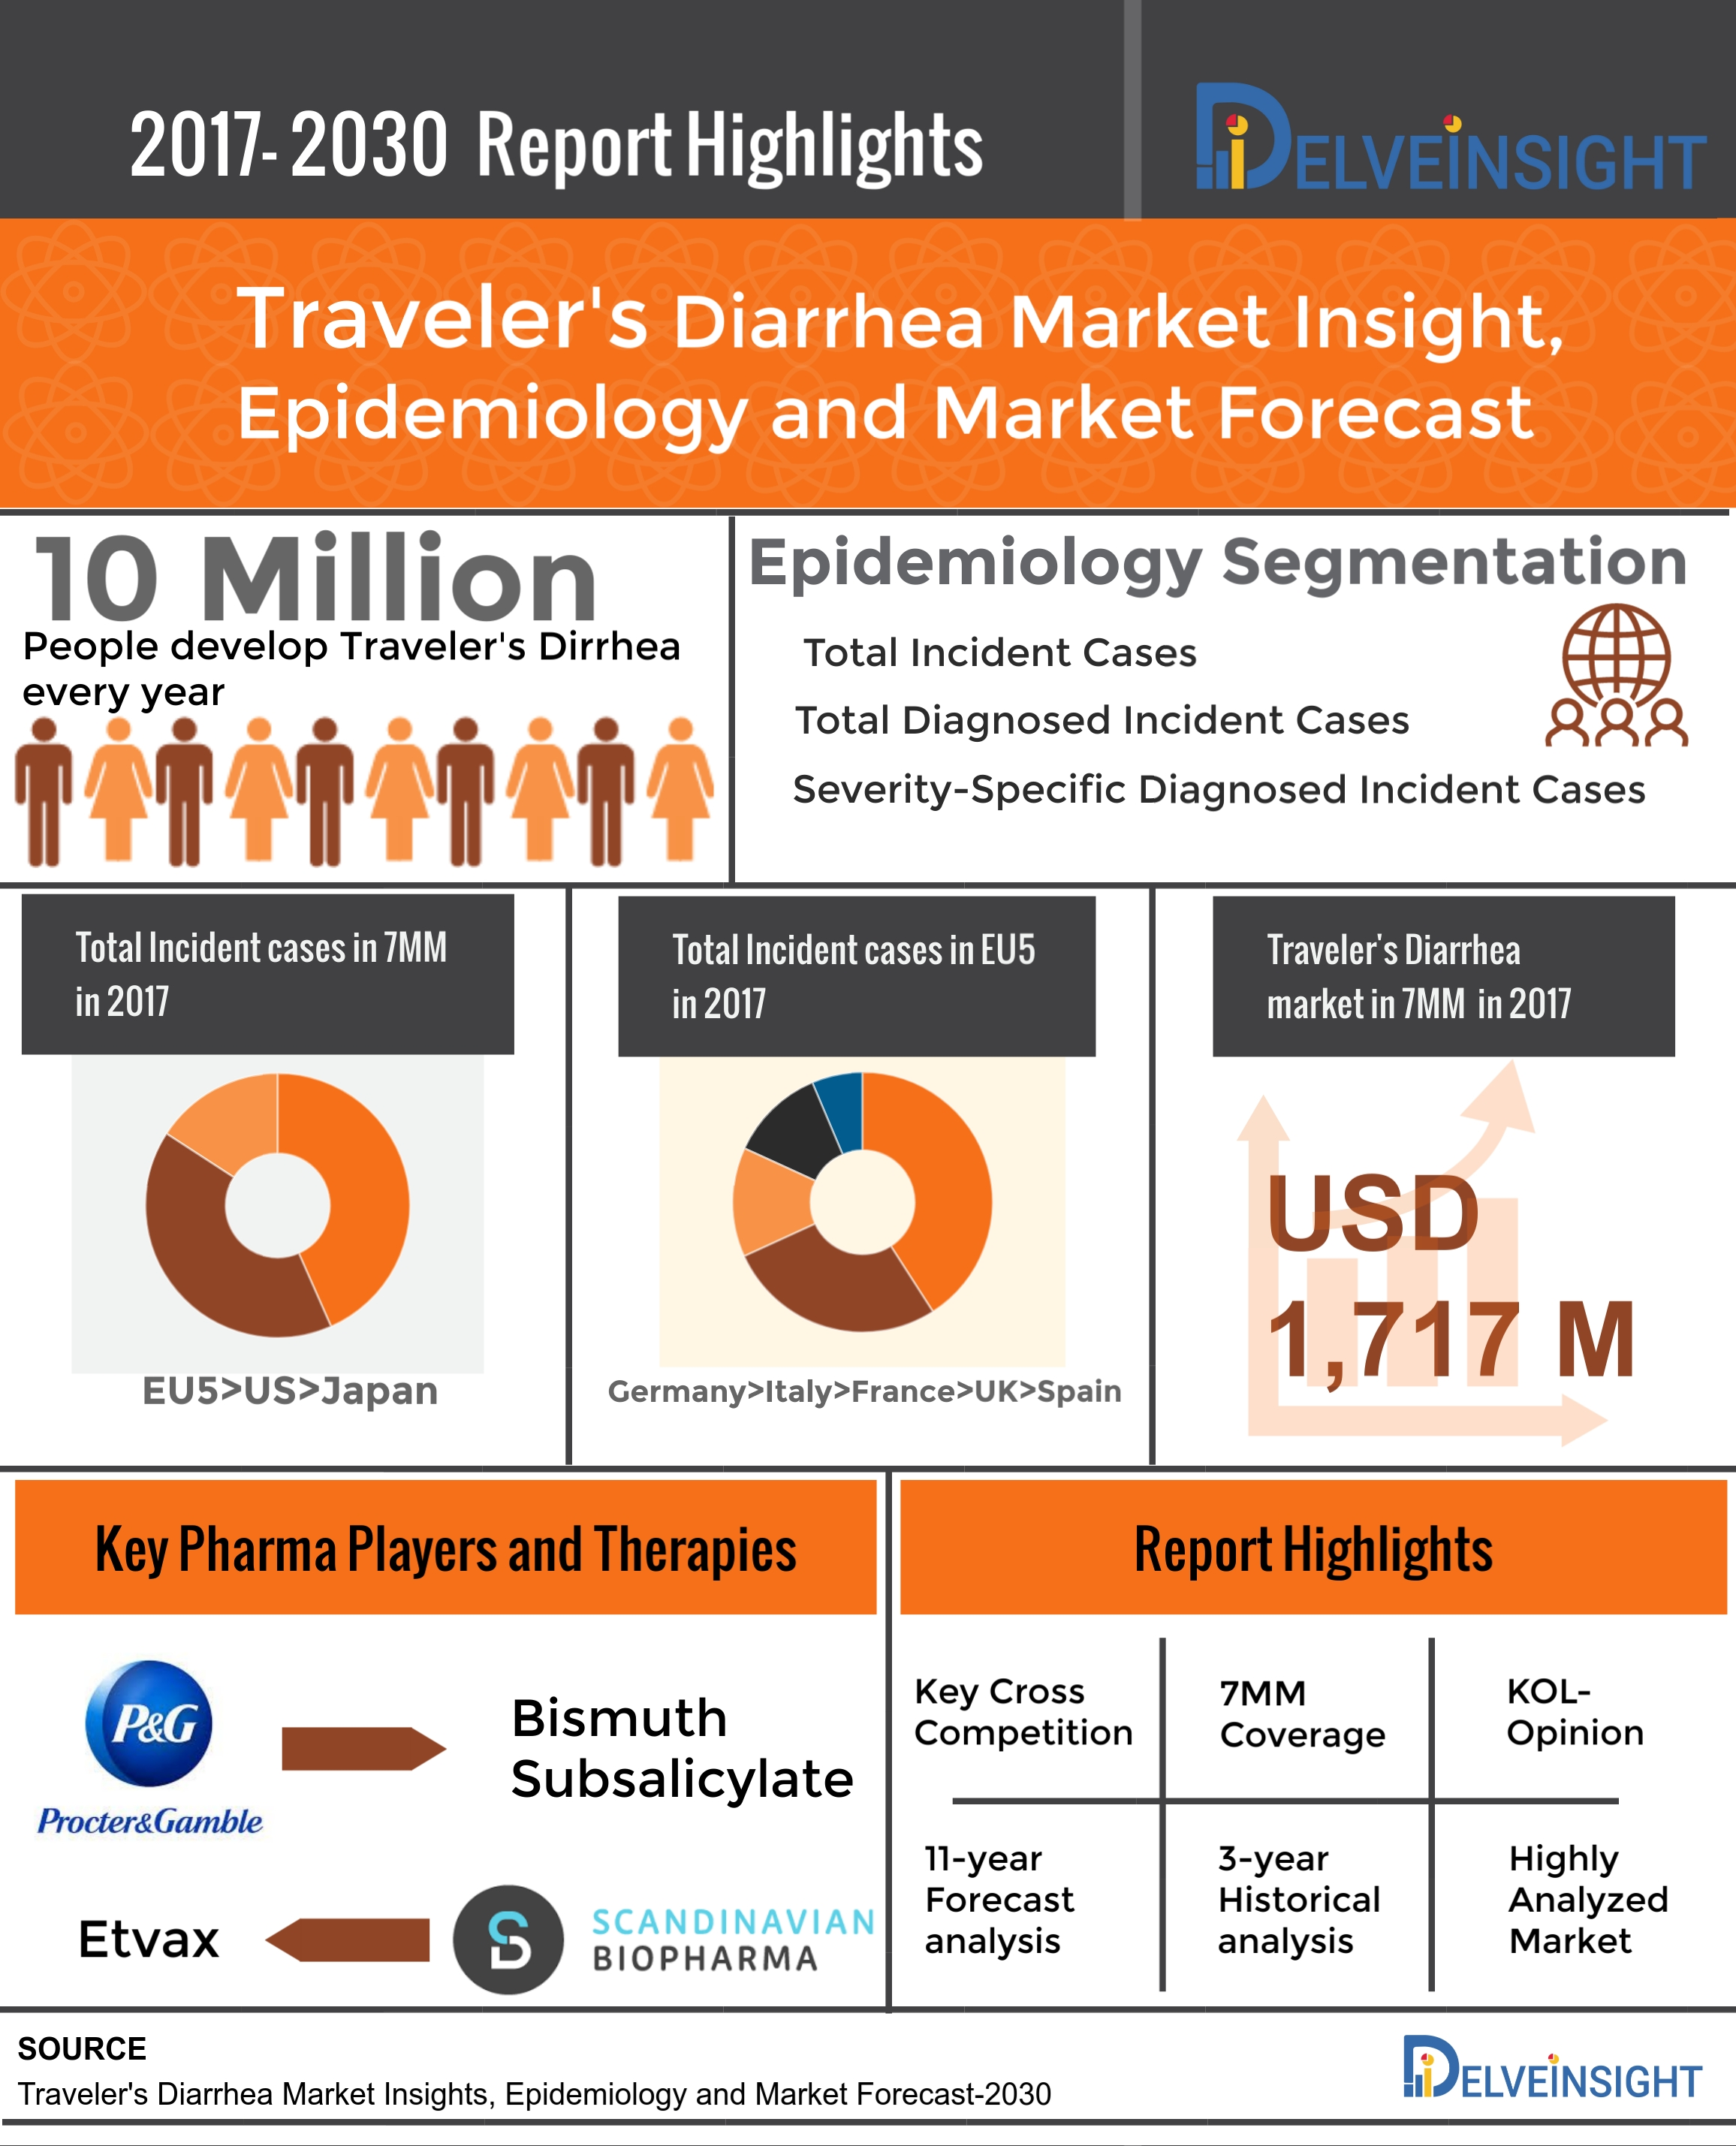 Traveler's Diarrhea Global API Manufacturers Marketed and Phase III Drugs Landscape: Analysis and Forecast